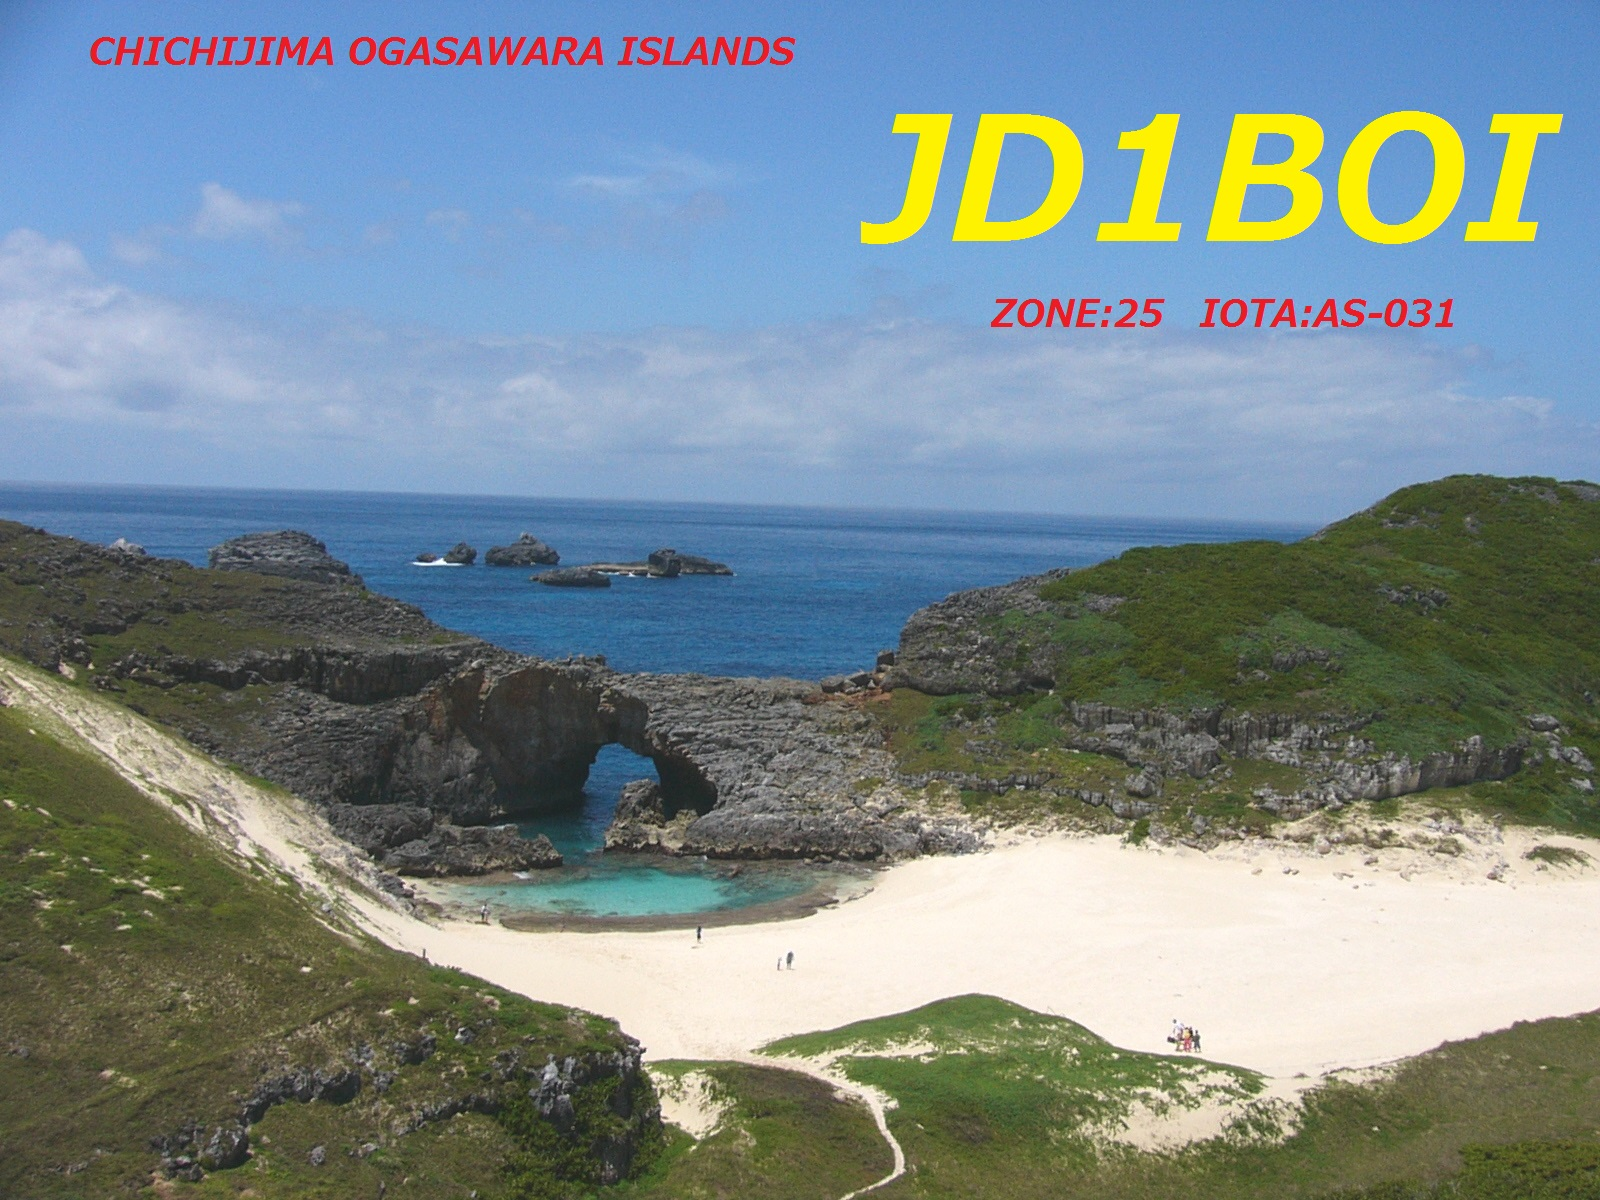 Chichijima Island Ogasawara Islands JD1BOI